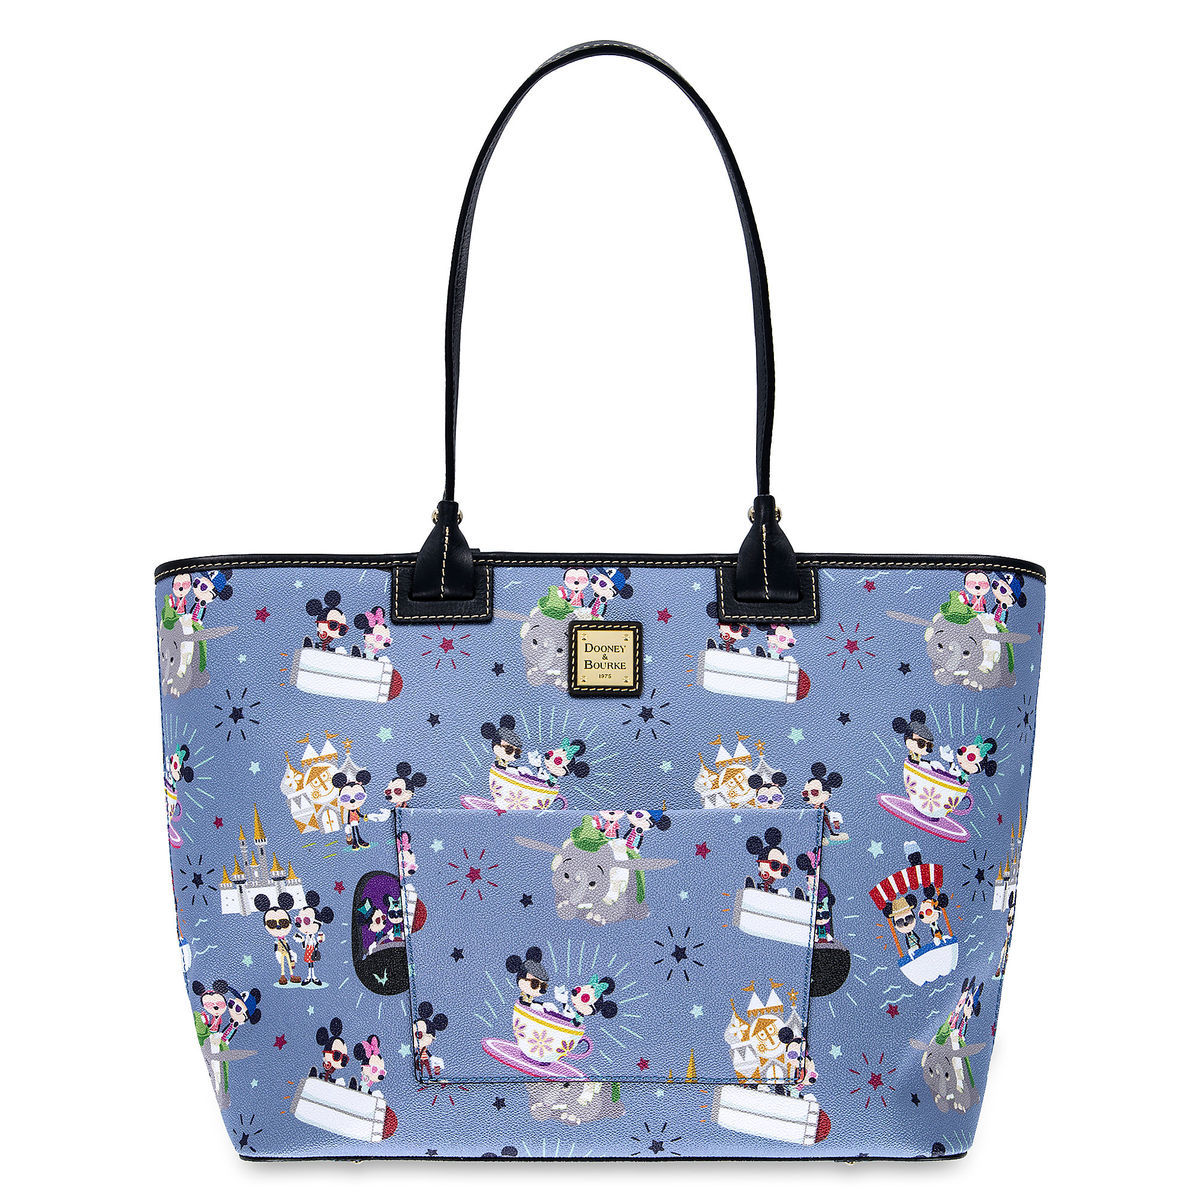 Product Image of Mickey and Minnie Mouse Large Tote by Dooney   Bourke   1 1a2b701305a30